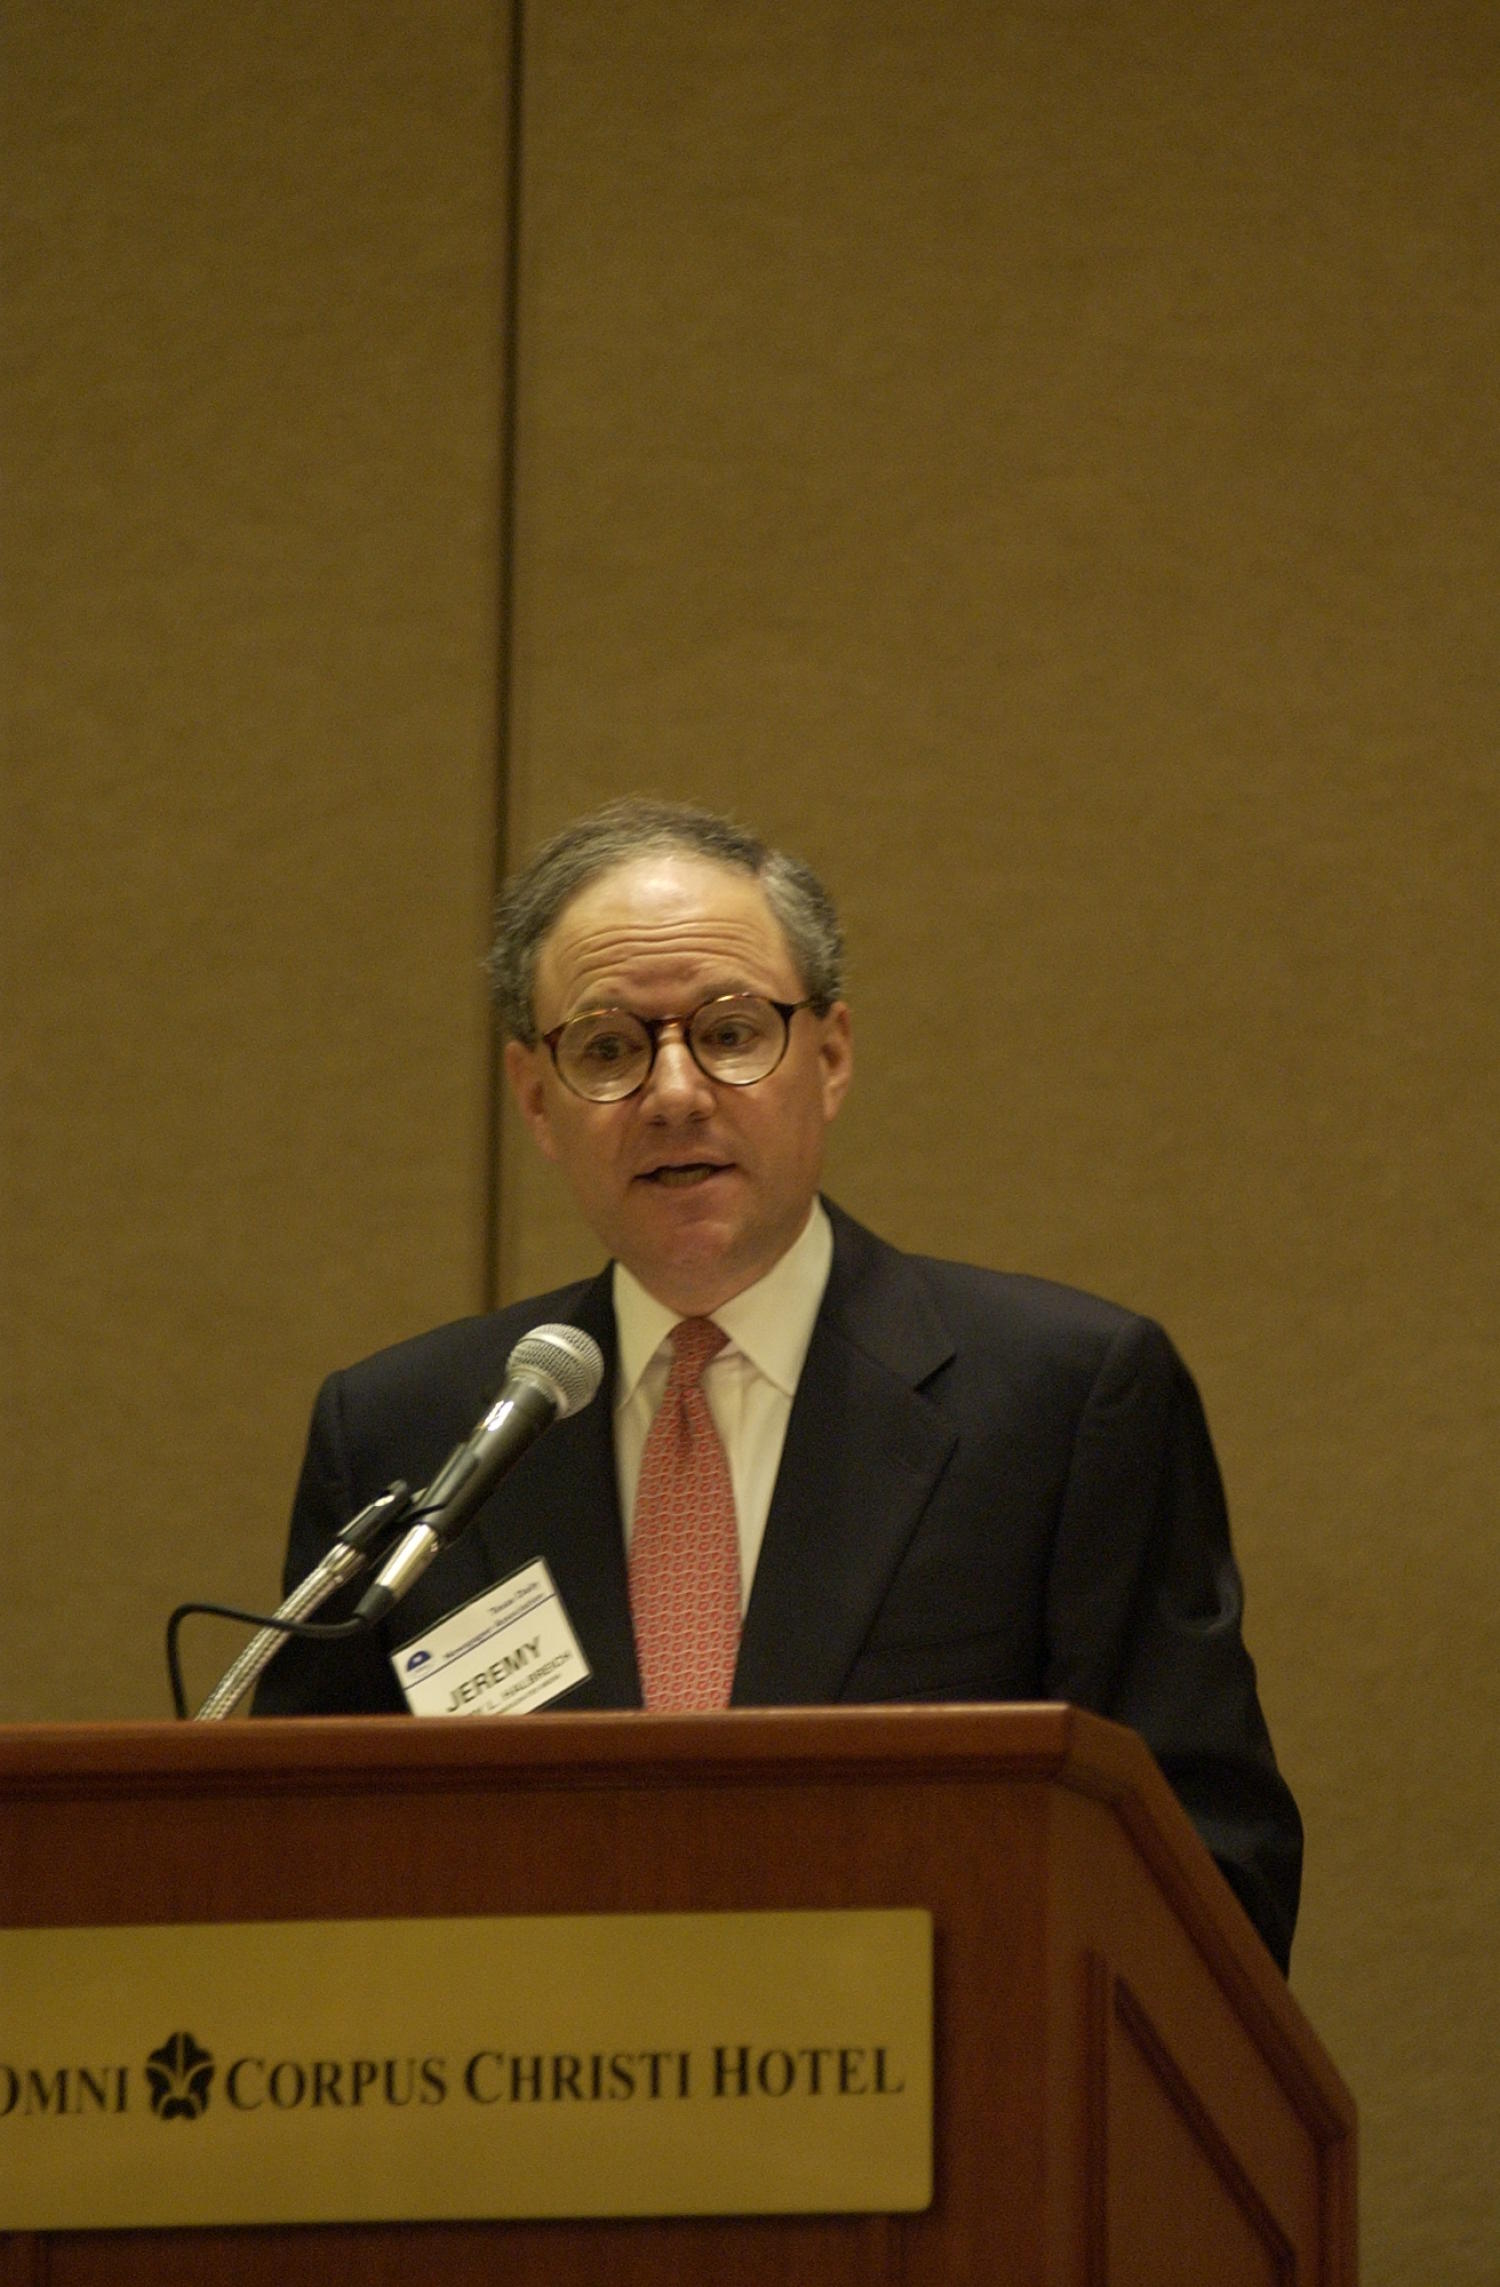 [Guest speaker Jeremy L. Halbreich at TDNA conference], Photograph of Jeremy L. Halbreich, a guest speaker attending the 2004 Texas Daily News Association annual conference held in Corpus Christi. Halbreich is standing at a podium in the conference hall and talking into the microphone addressing the attendees.,